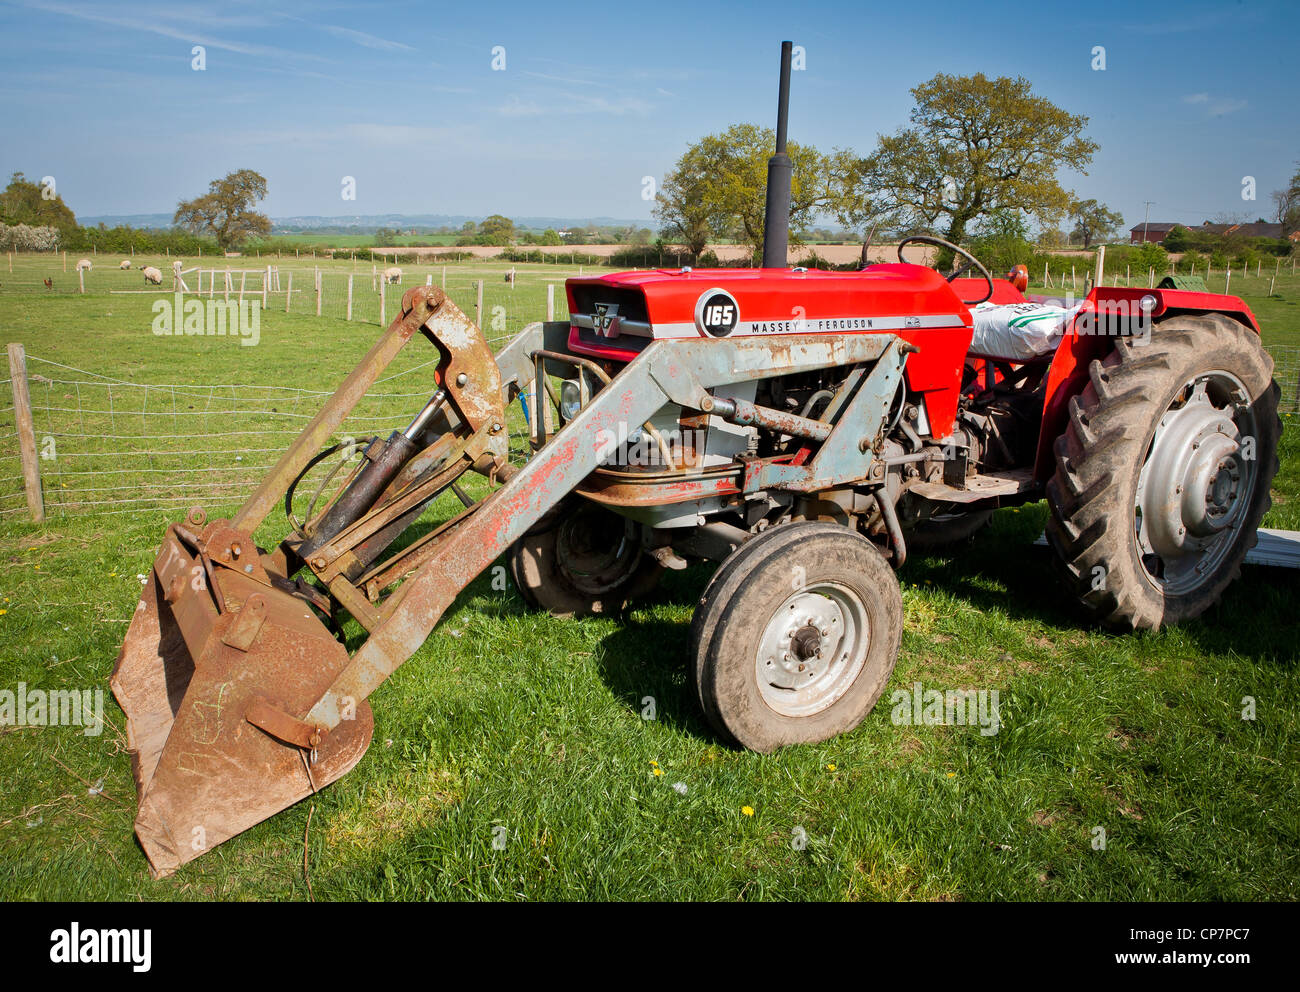 Massey Ferguson 165 Vintage Red Tractor in field with blue sky Stock